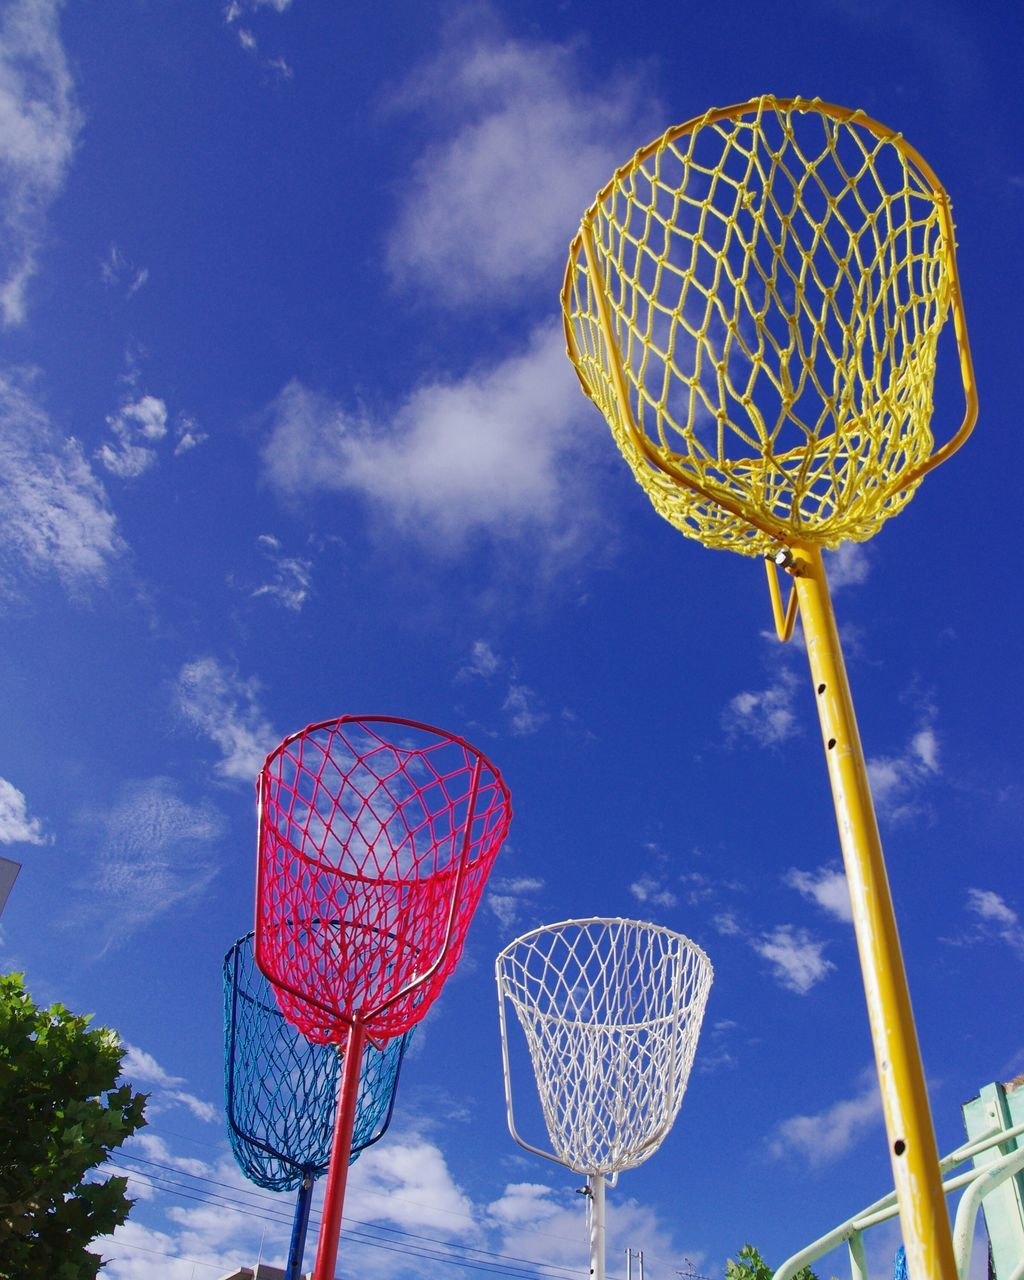 Low Angle View Of Multi Colored Basket Against Sky